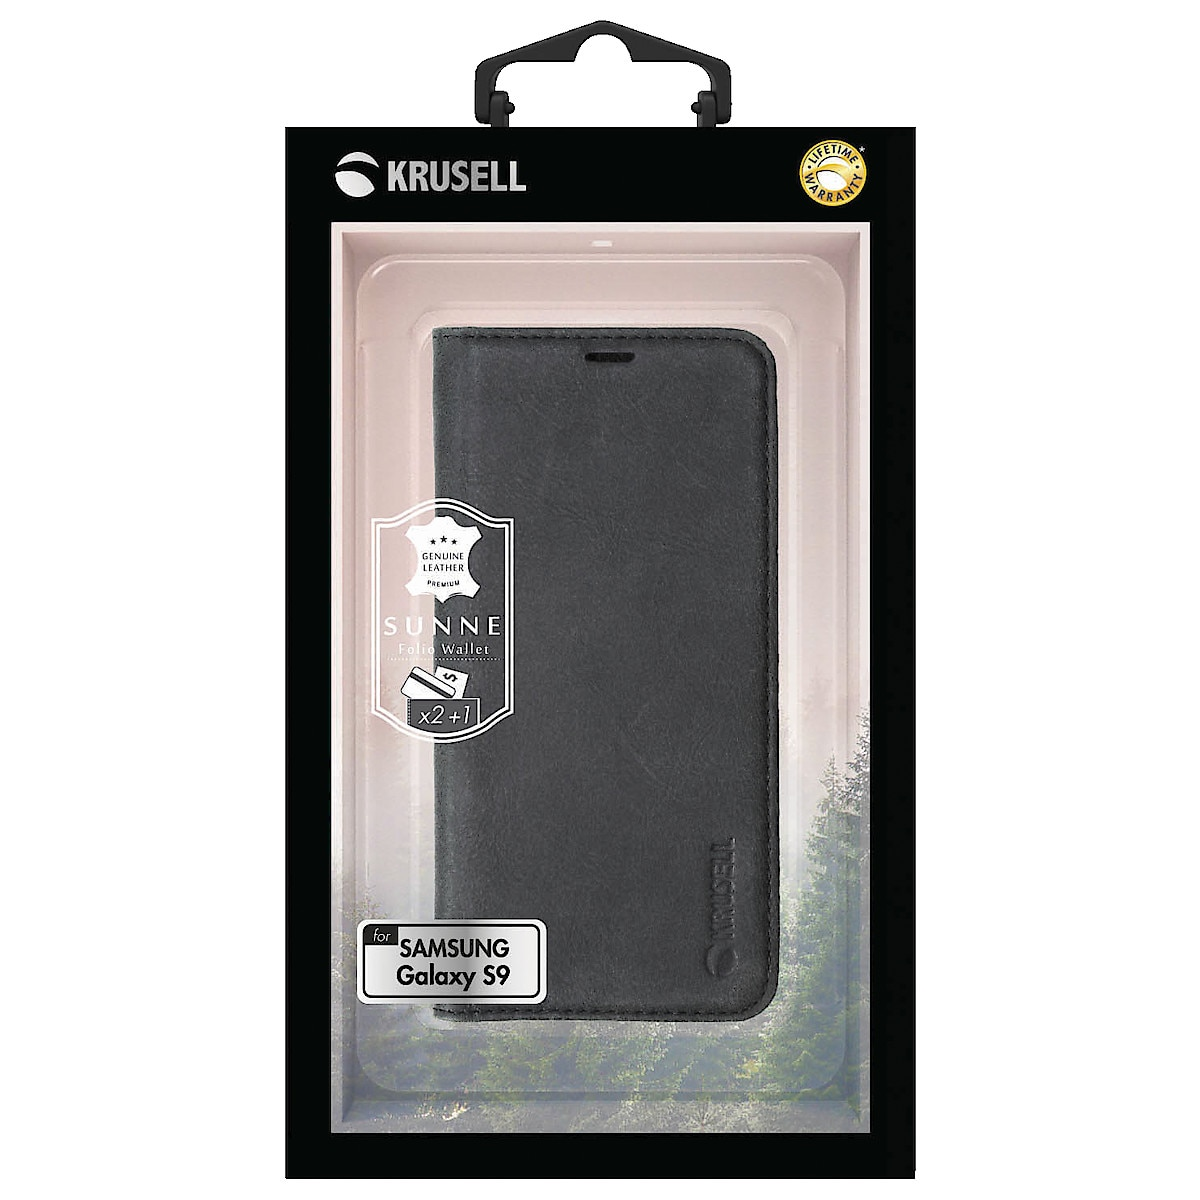 Krusell Sunne FolioCase lommebokfutteral for Samsung Galaxy S9